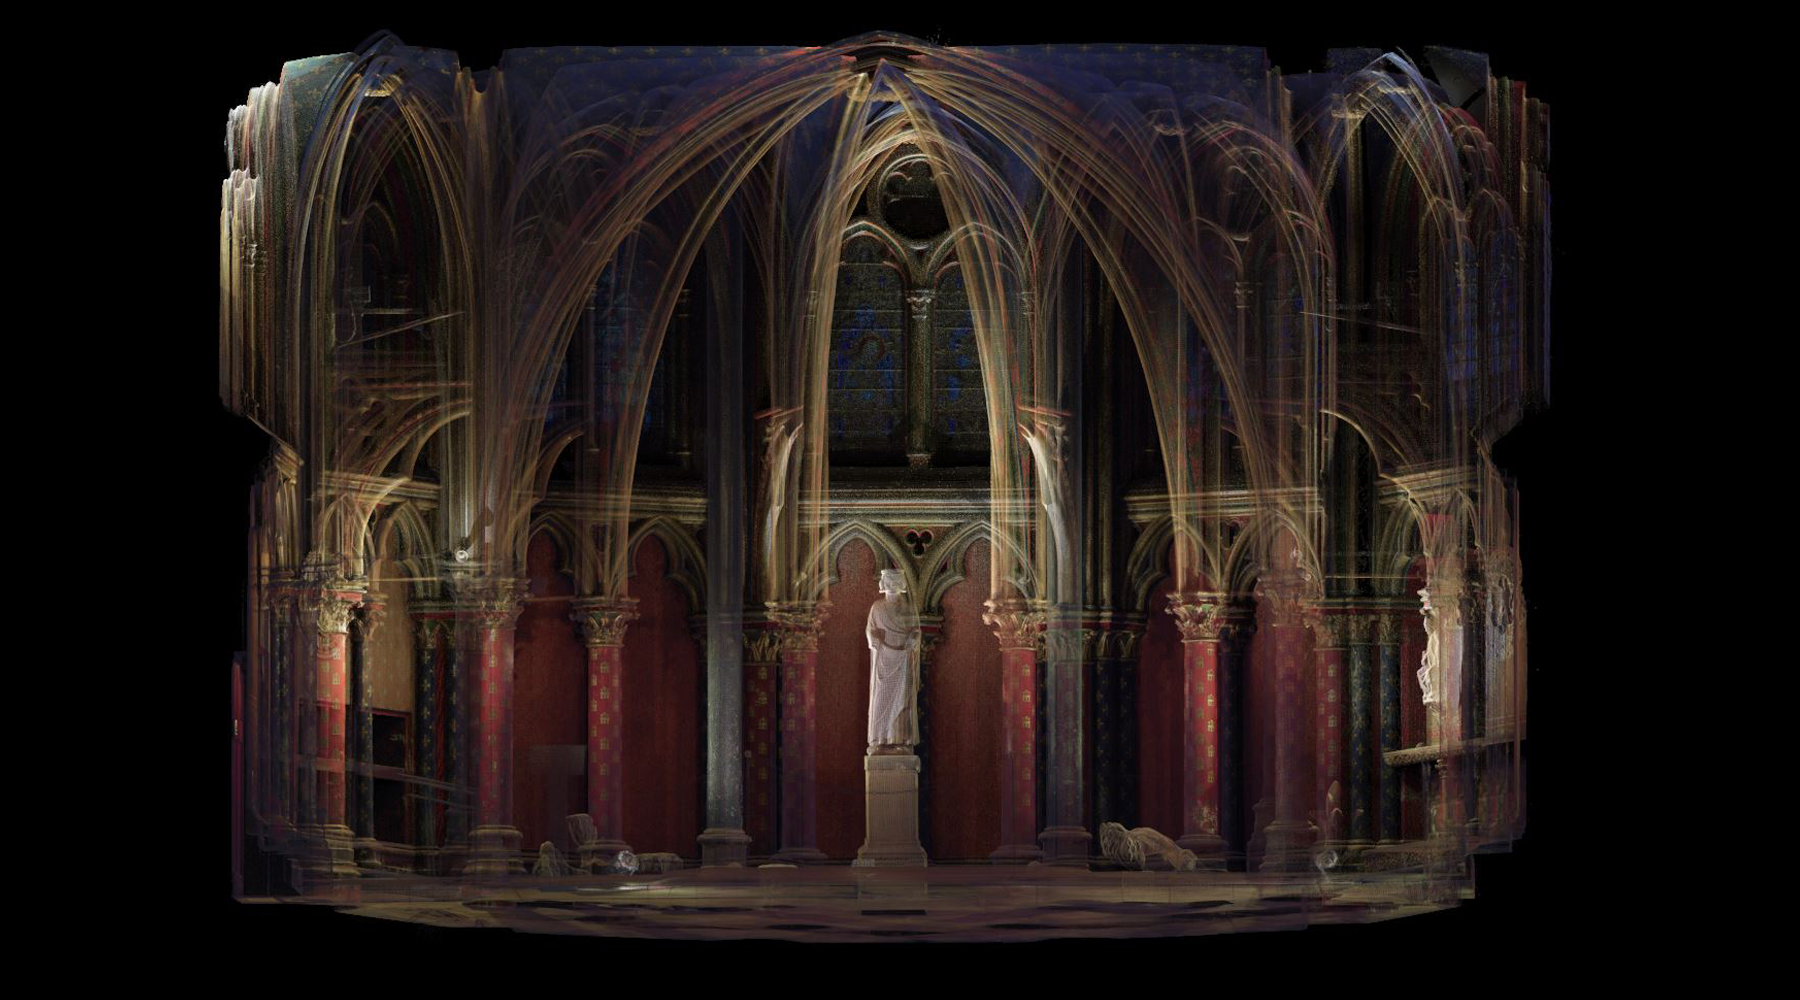 05 Sainte-Chapelle, Paris - Point cloud